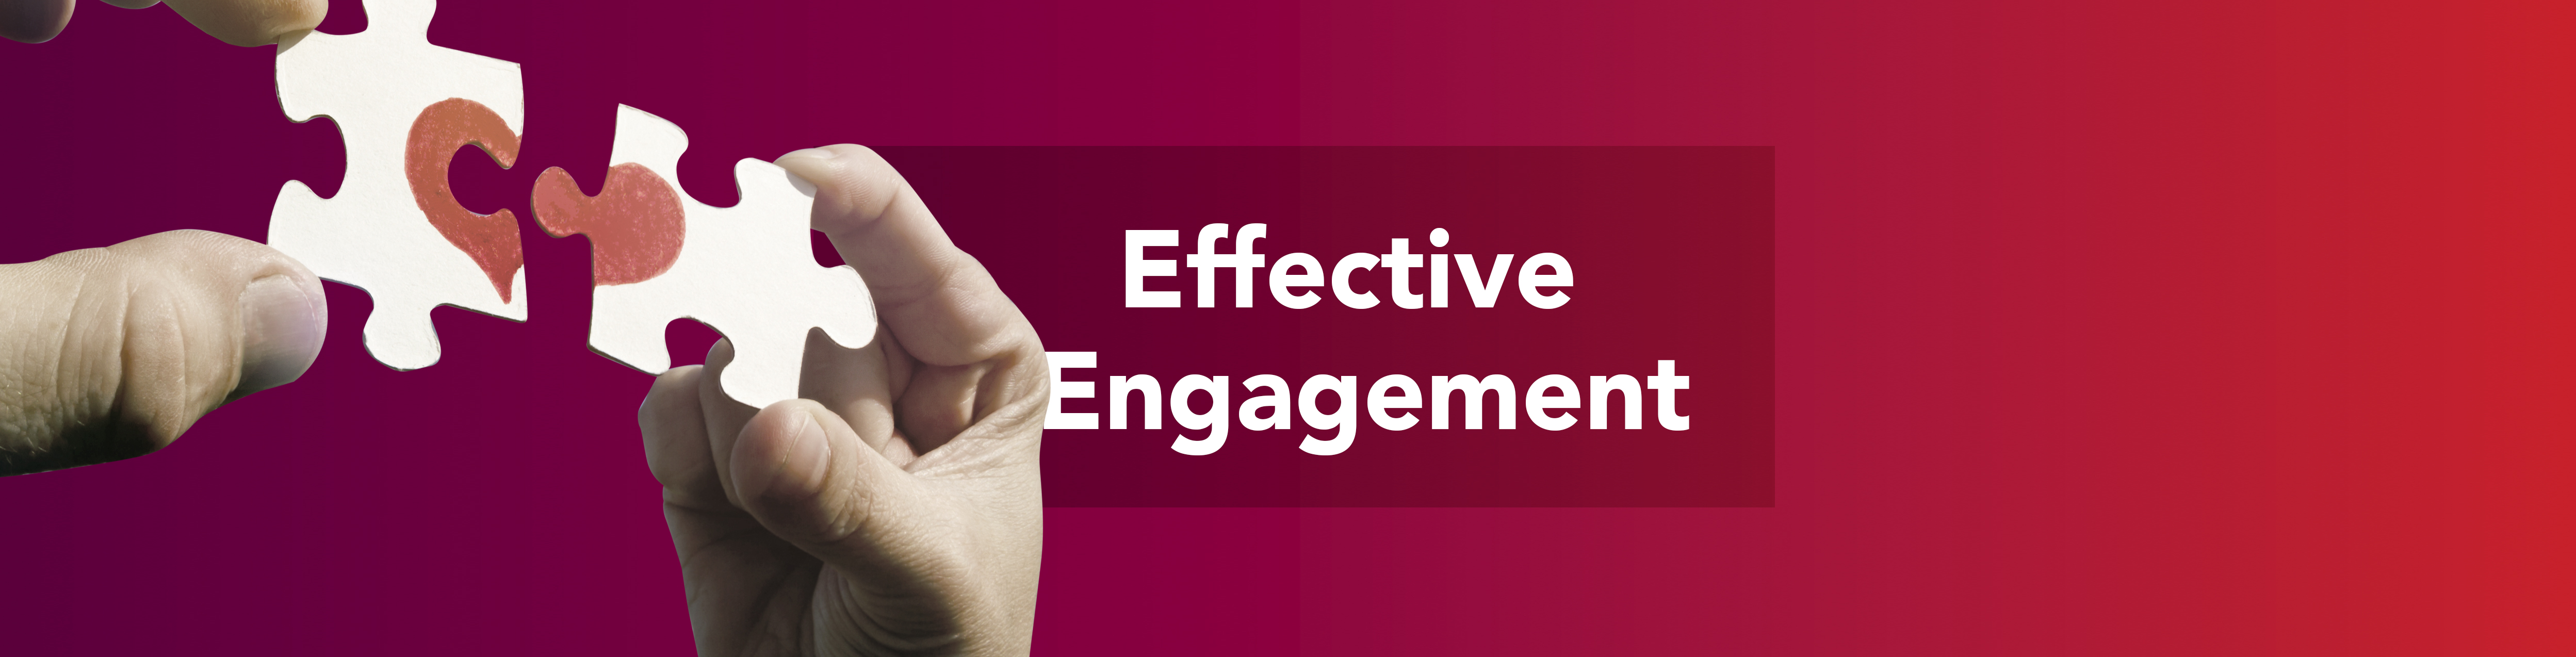 Effective_Engagement